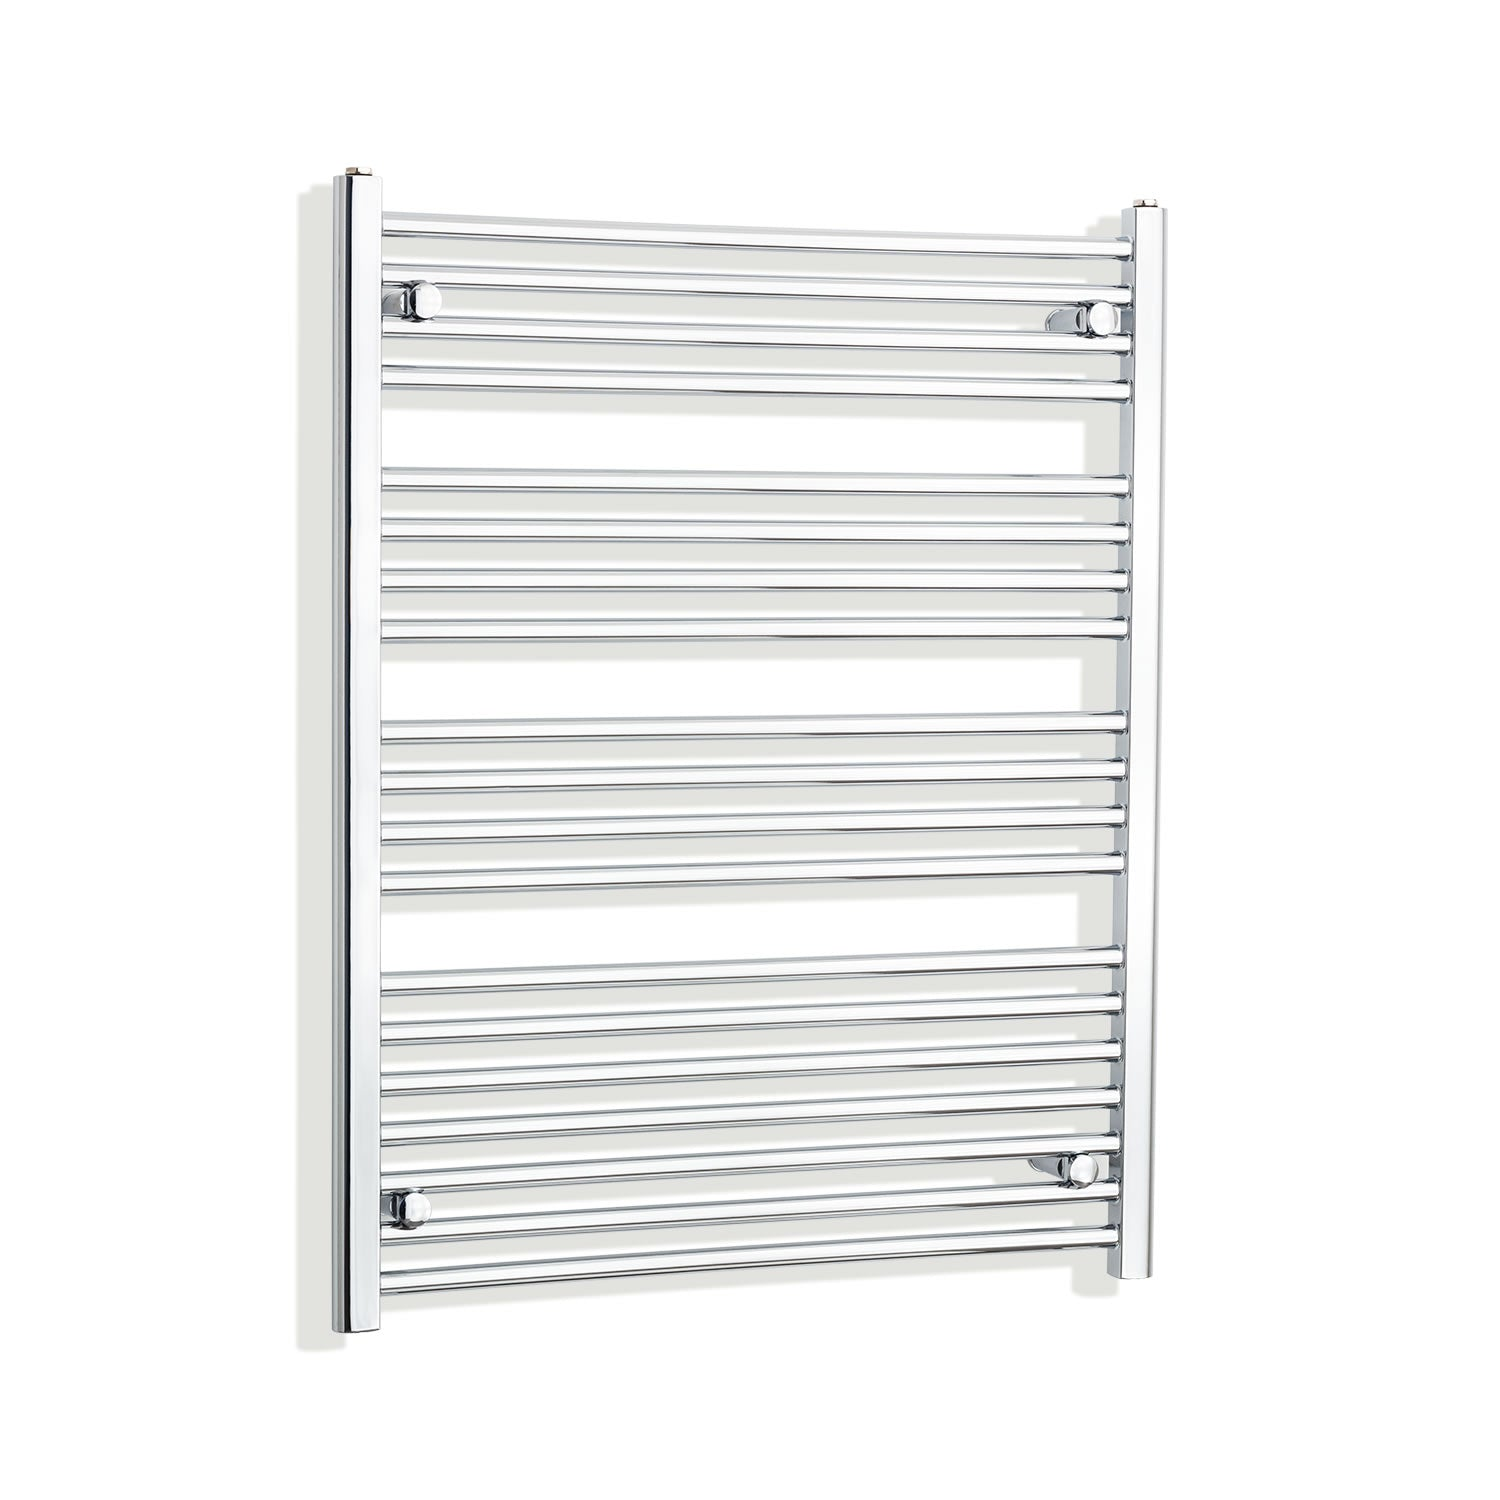 800mm Wide 1000mm High Chrome Towel Rail Radiator